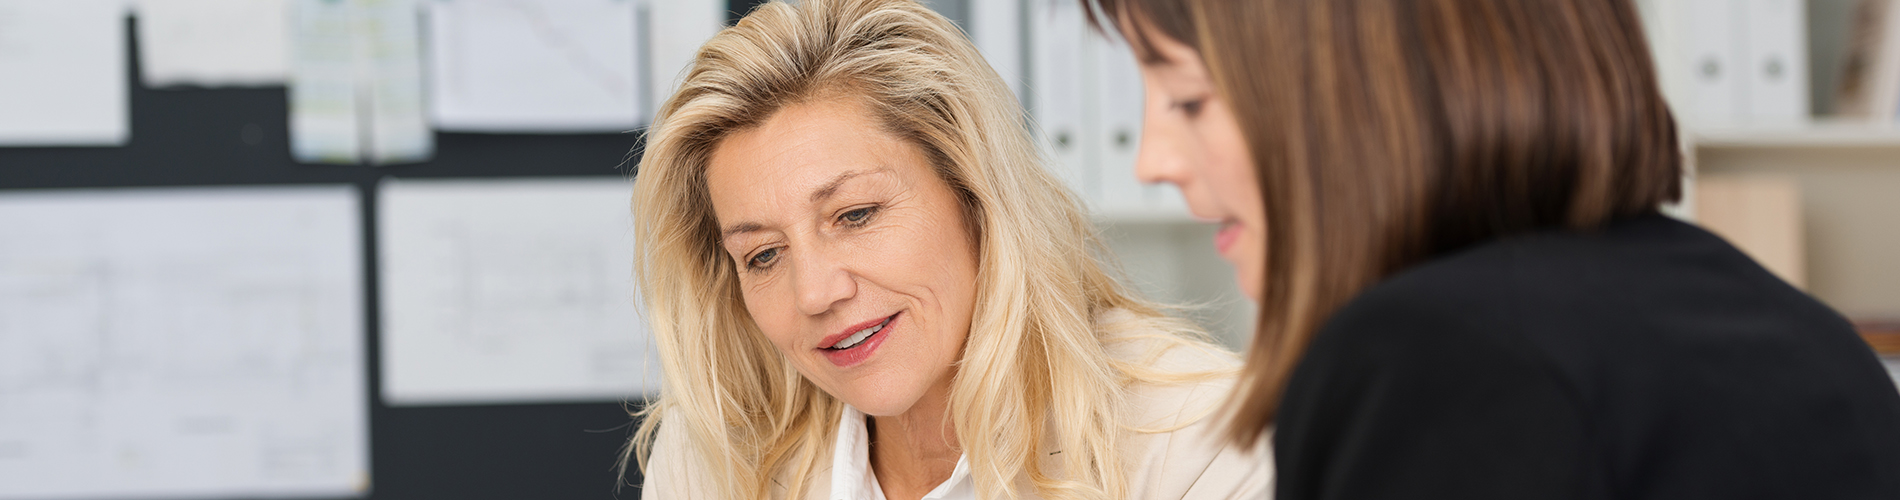 Substance Abuse Counselor Jobs